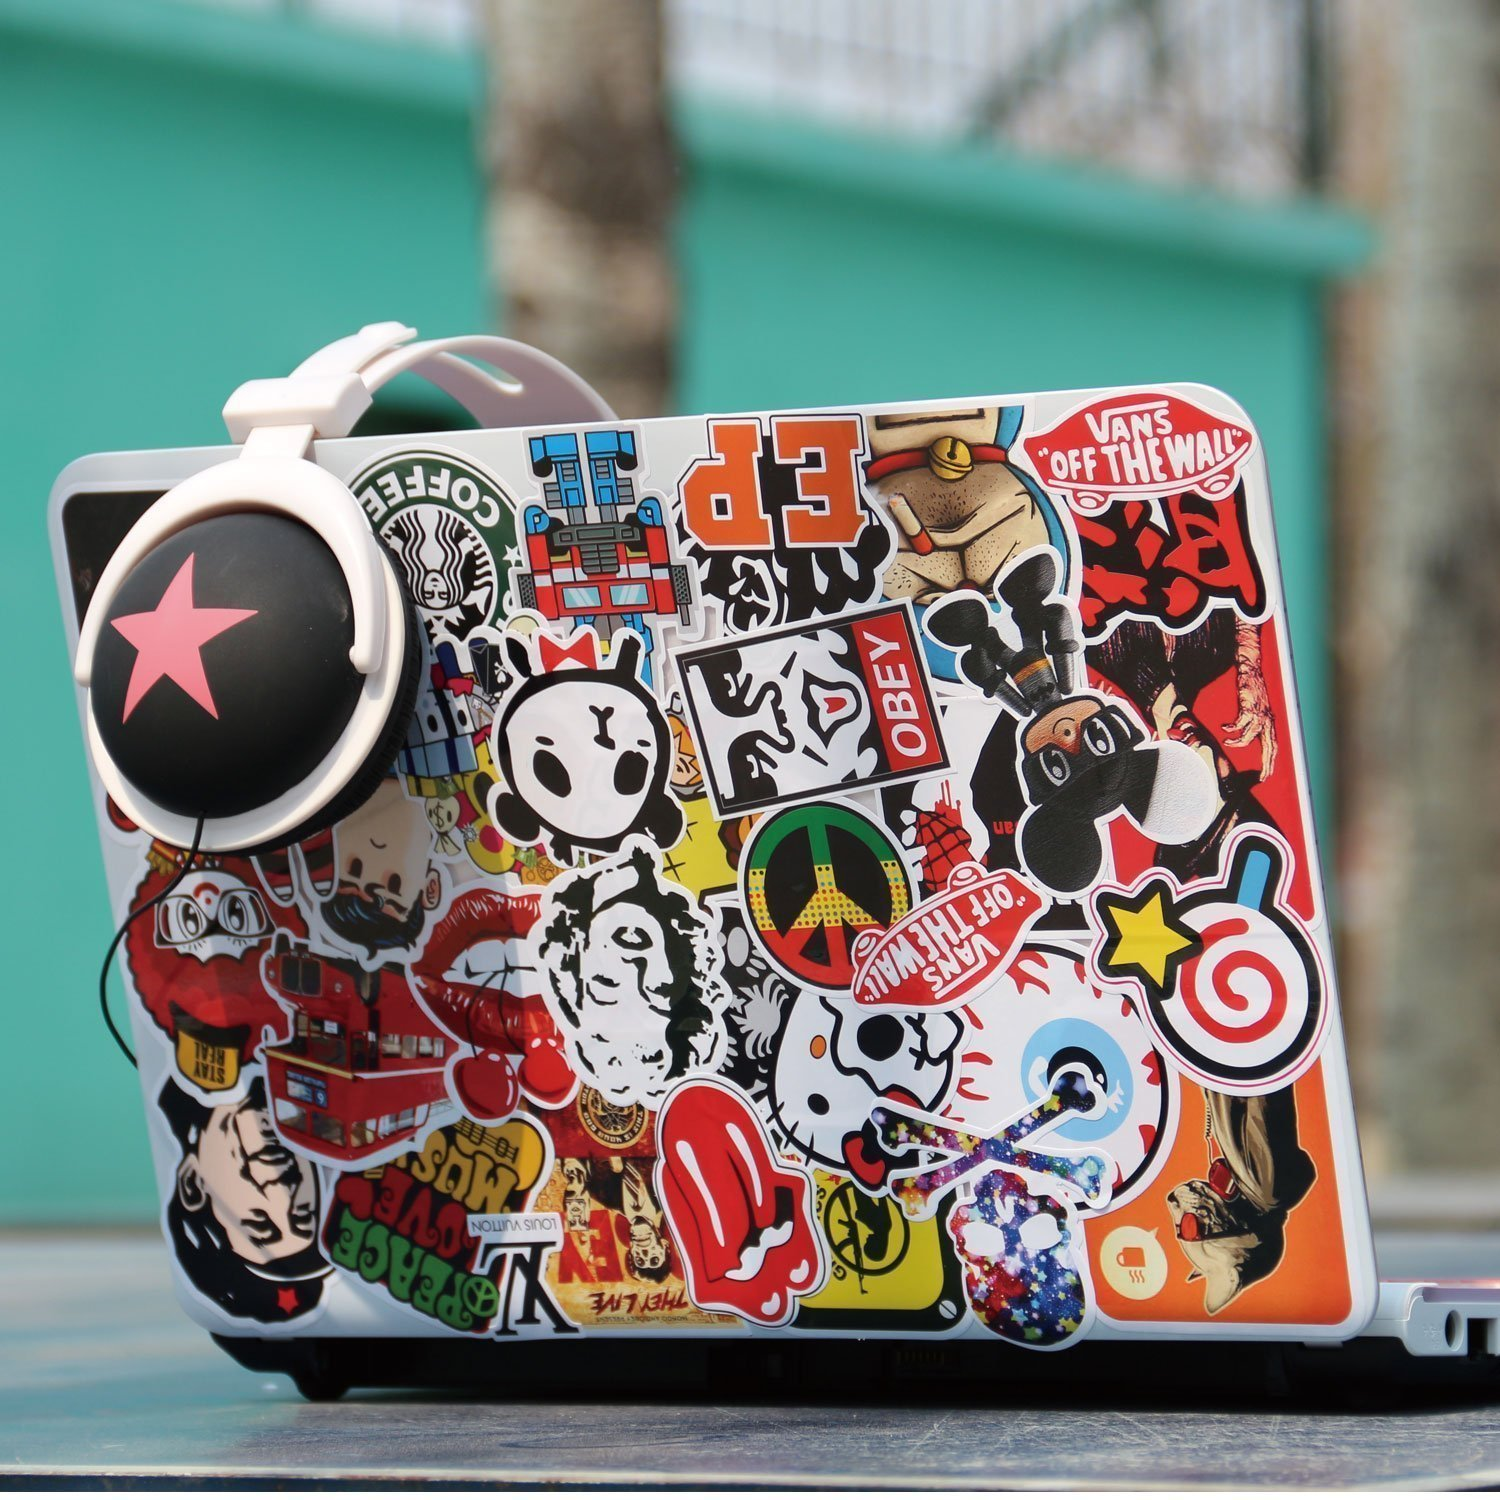 WayOuter Sticker Pack 100pcs Graffiti Sticker Decals Vinyls for Laptop,Kids,Cars,Motorcycle,Bicycle,Skateboard